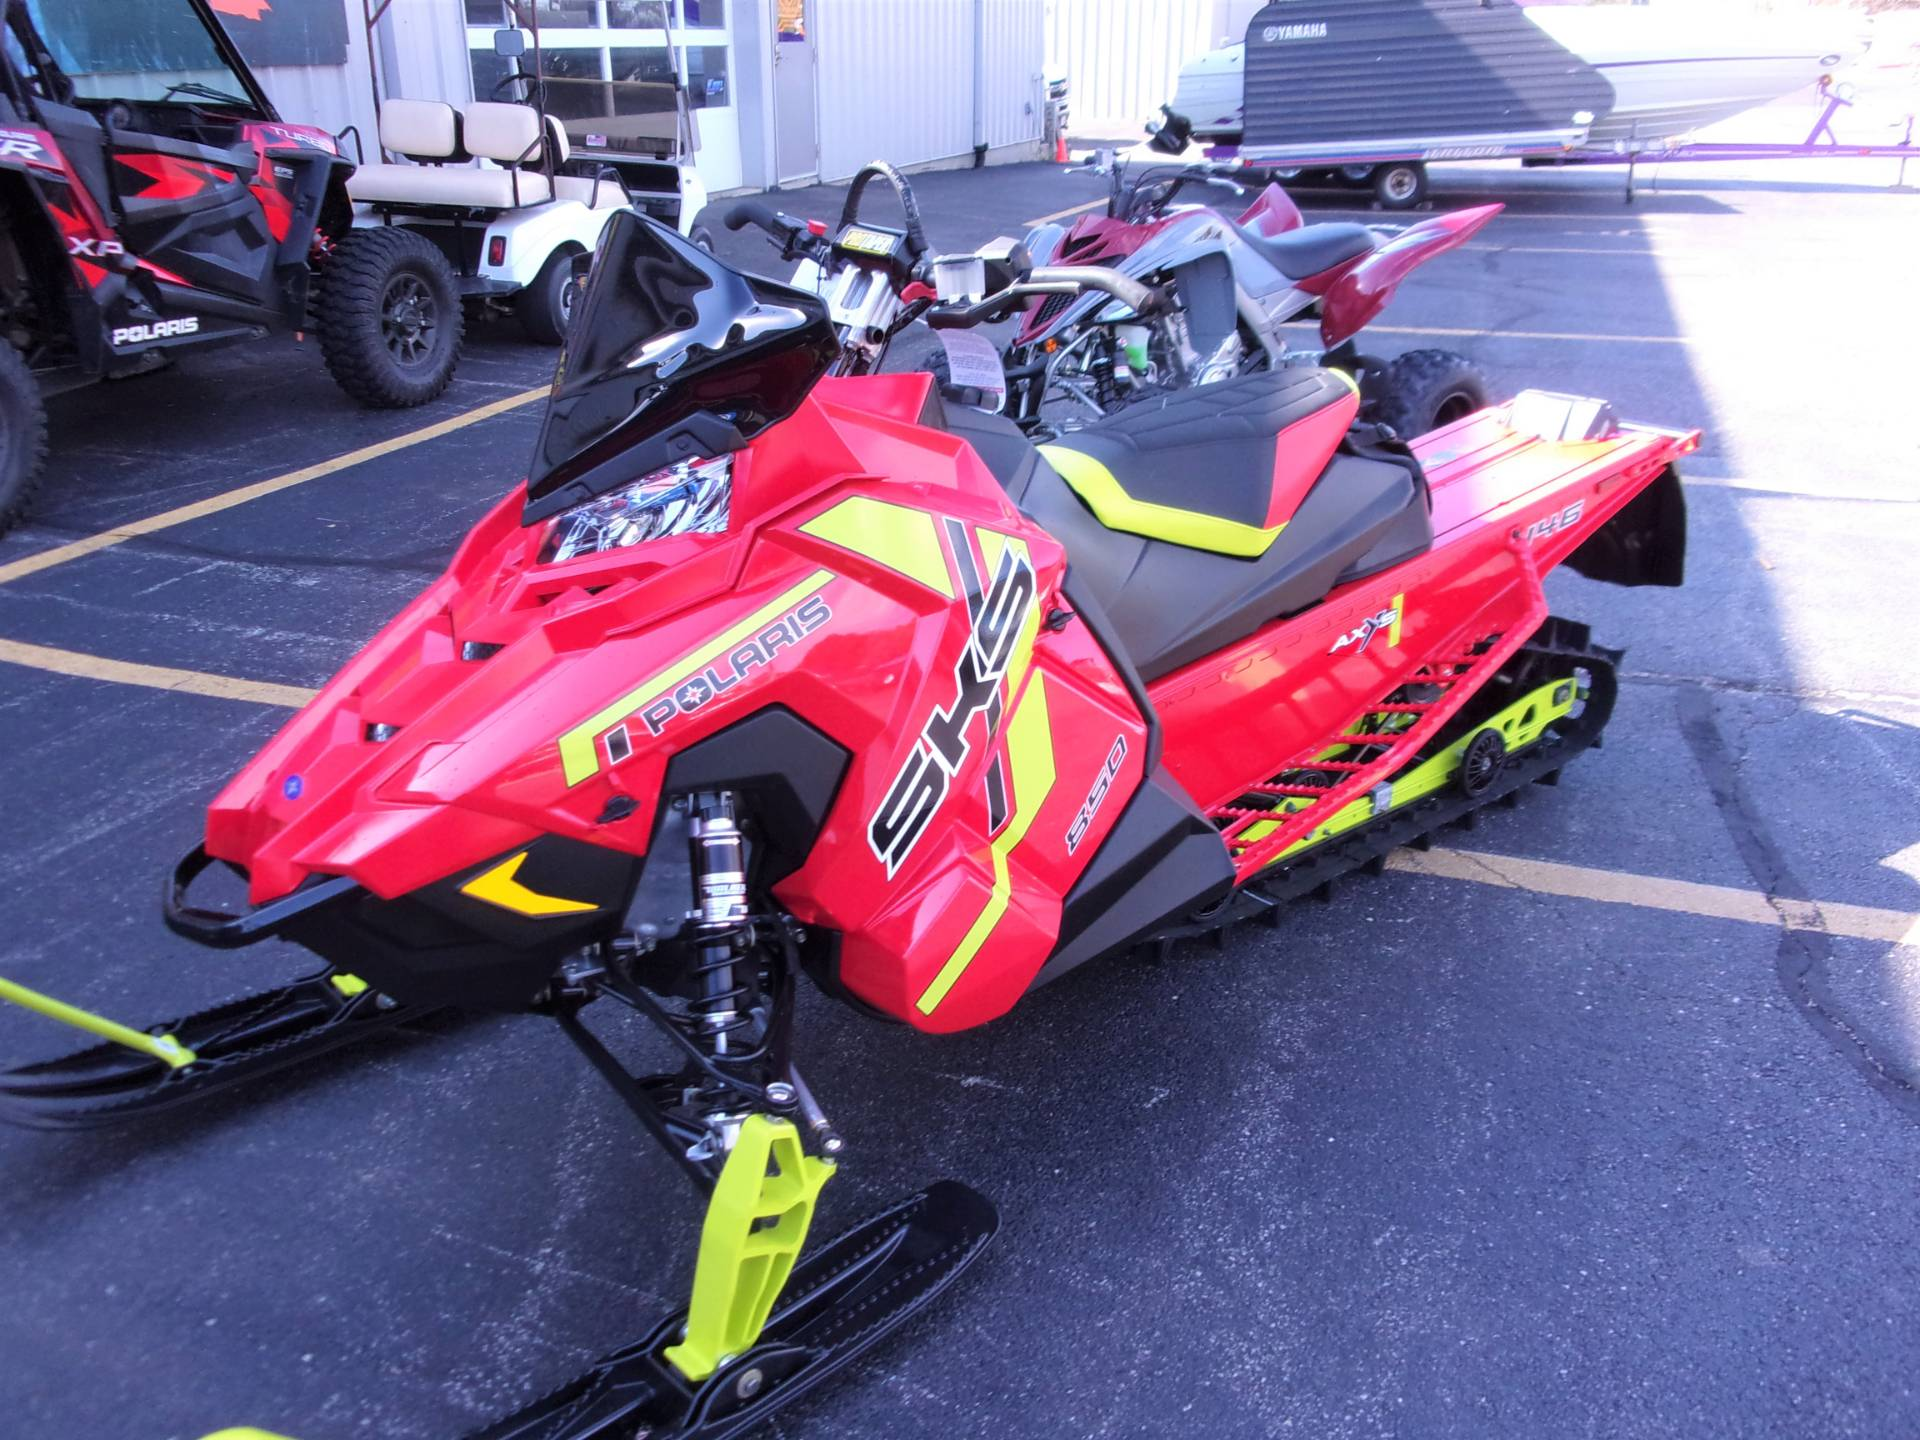 2021 Polaris 850 SKS 146 Factory Choice in Belvidere, Illinois - Photo 1